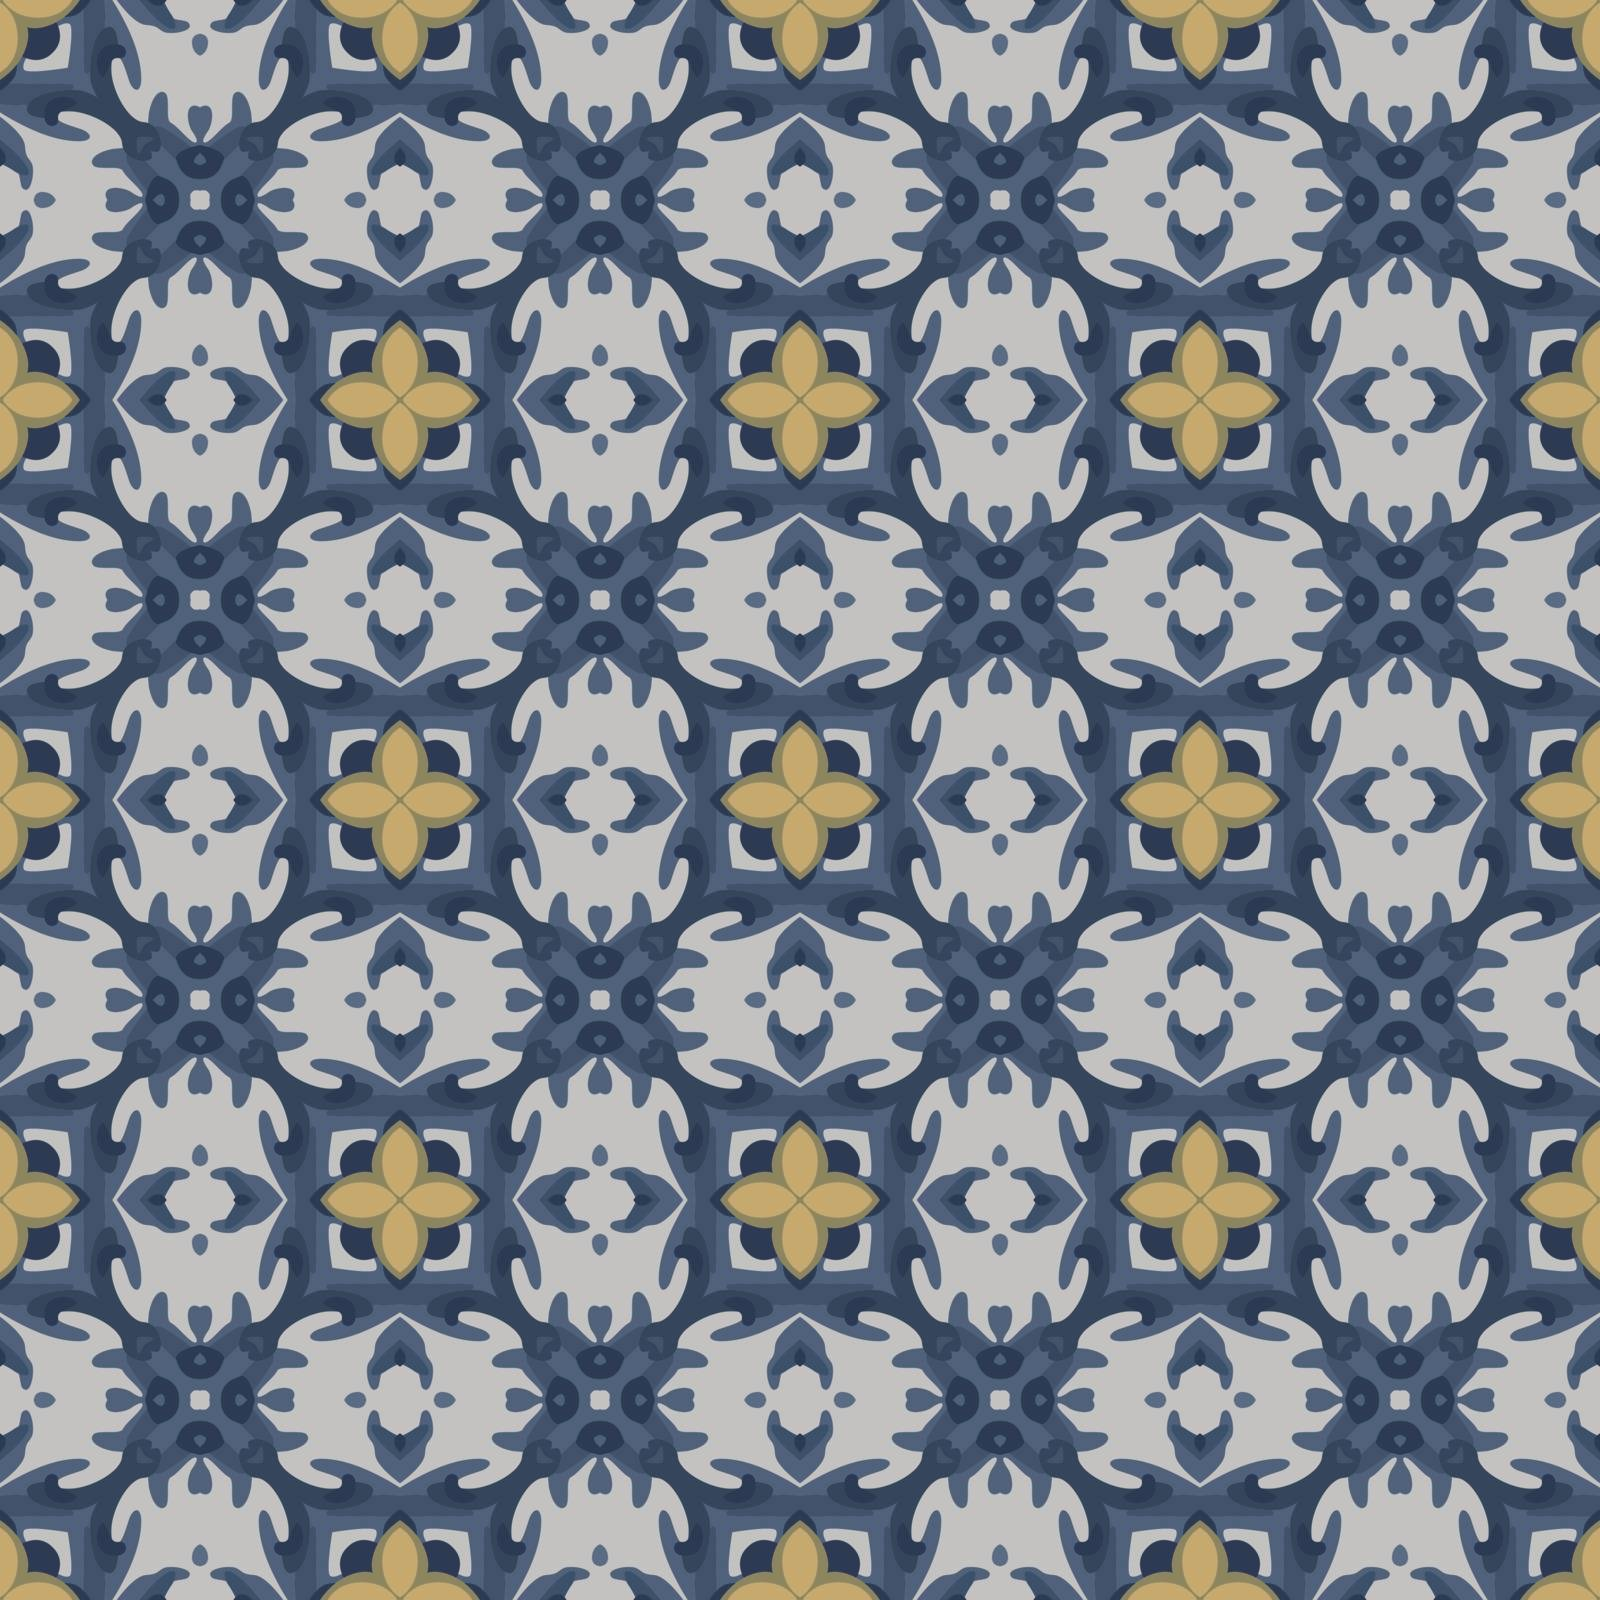 Seamless illustrated pattern made of abstract elements in white, yellow and blue